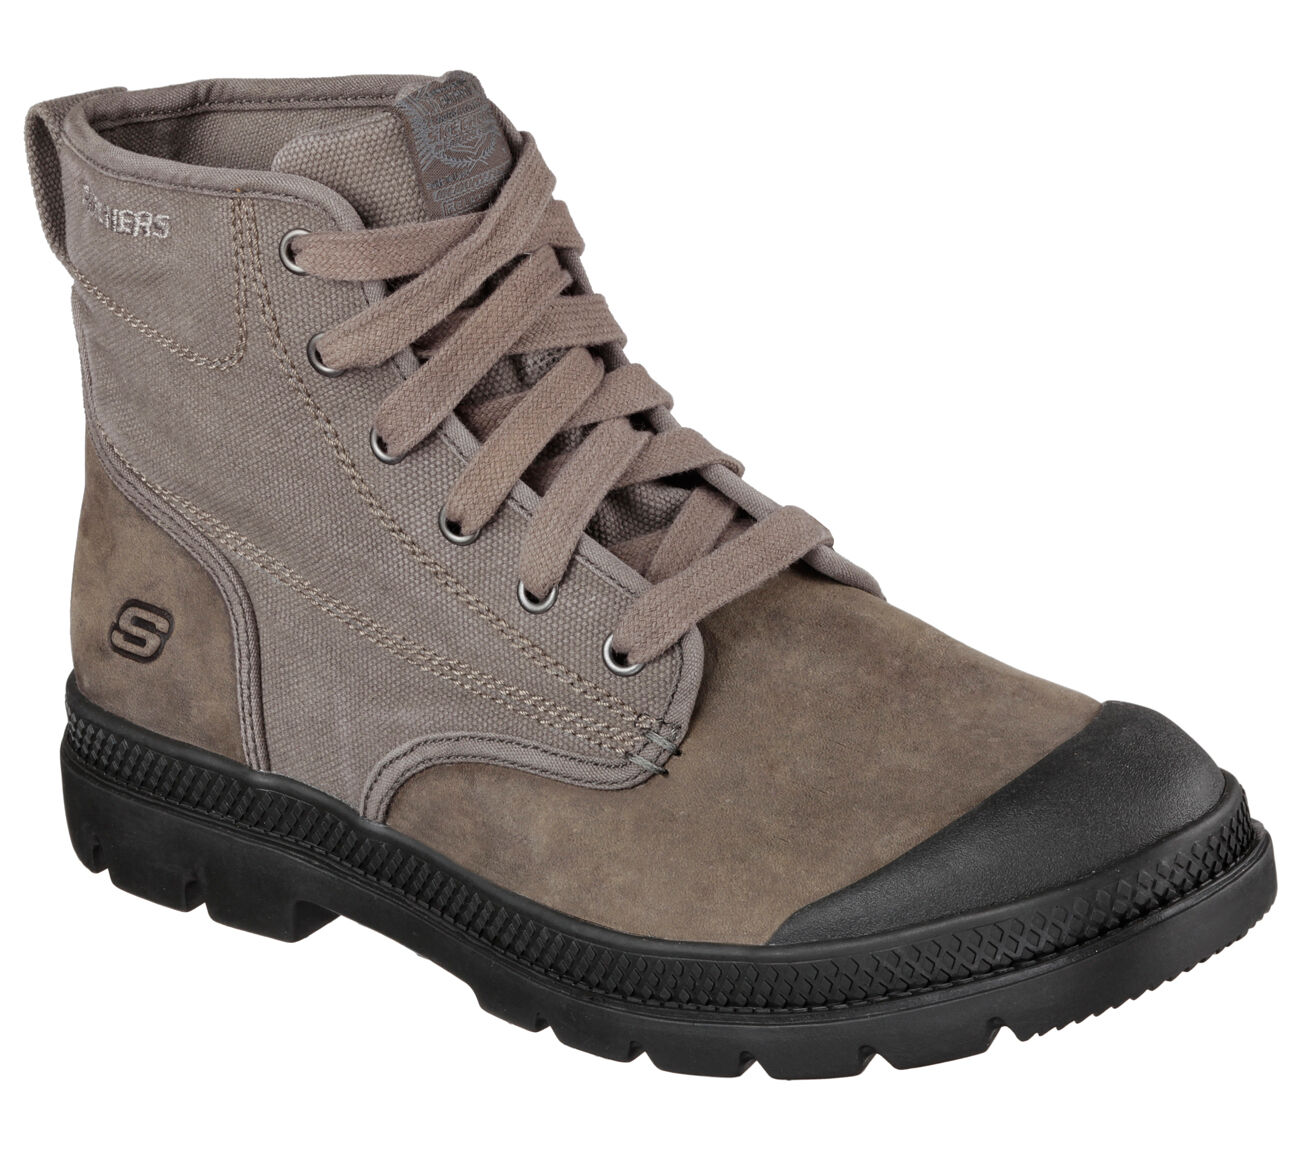 Men's SKECHERS Relaxed Fit Milton - Silvio Boot, 64587 /Char Sizes 8-14 Charcoal